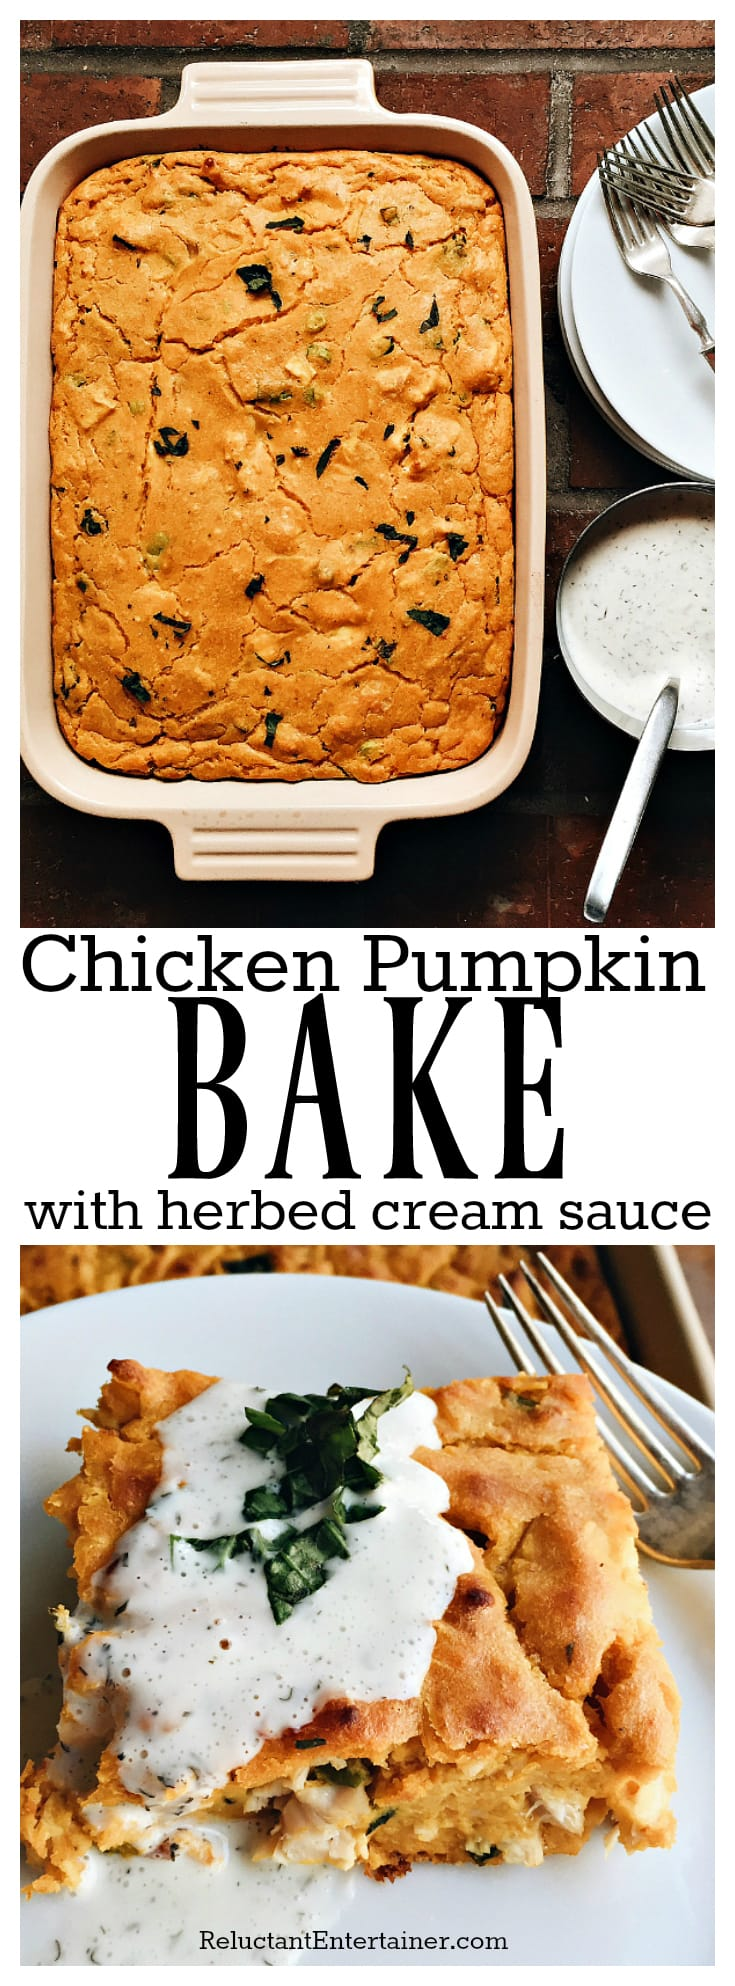 Chicken Pumpkin Bake with Herbed Cream Sauce is the ultimate fall dish to make ahead, and bake right before company comes to dinner